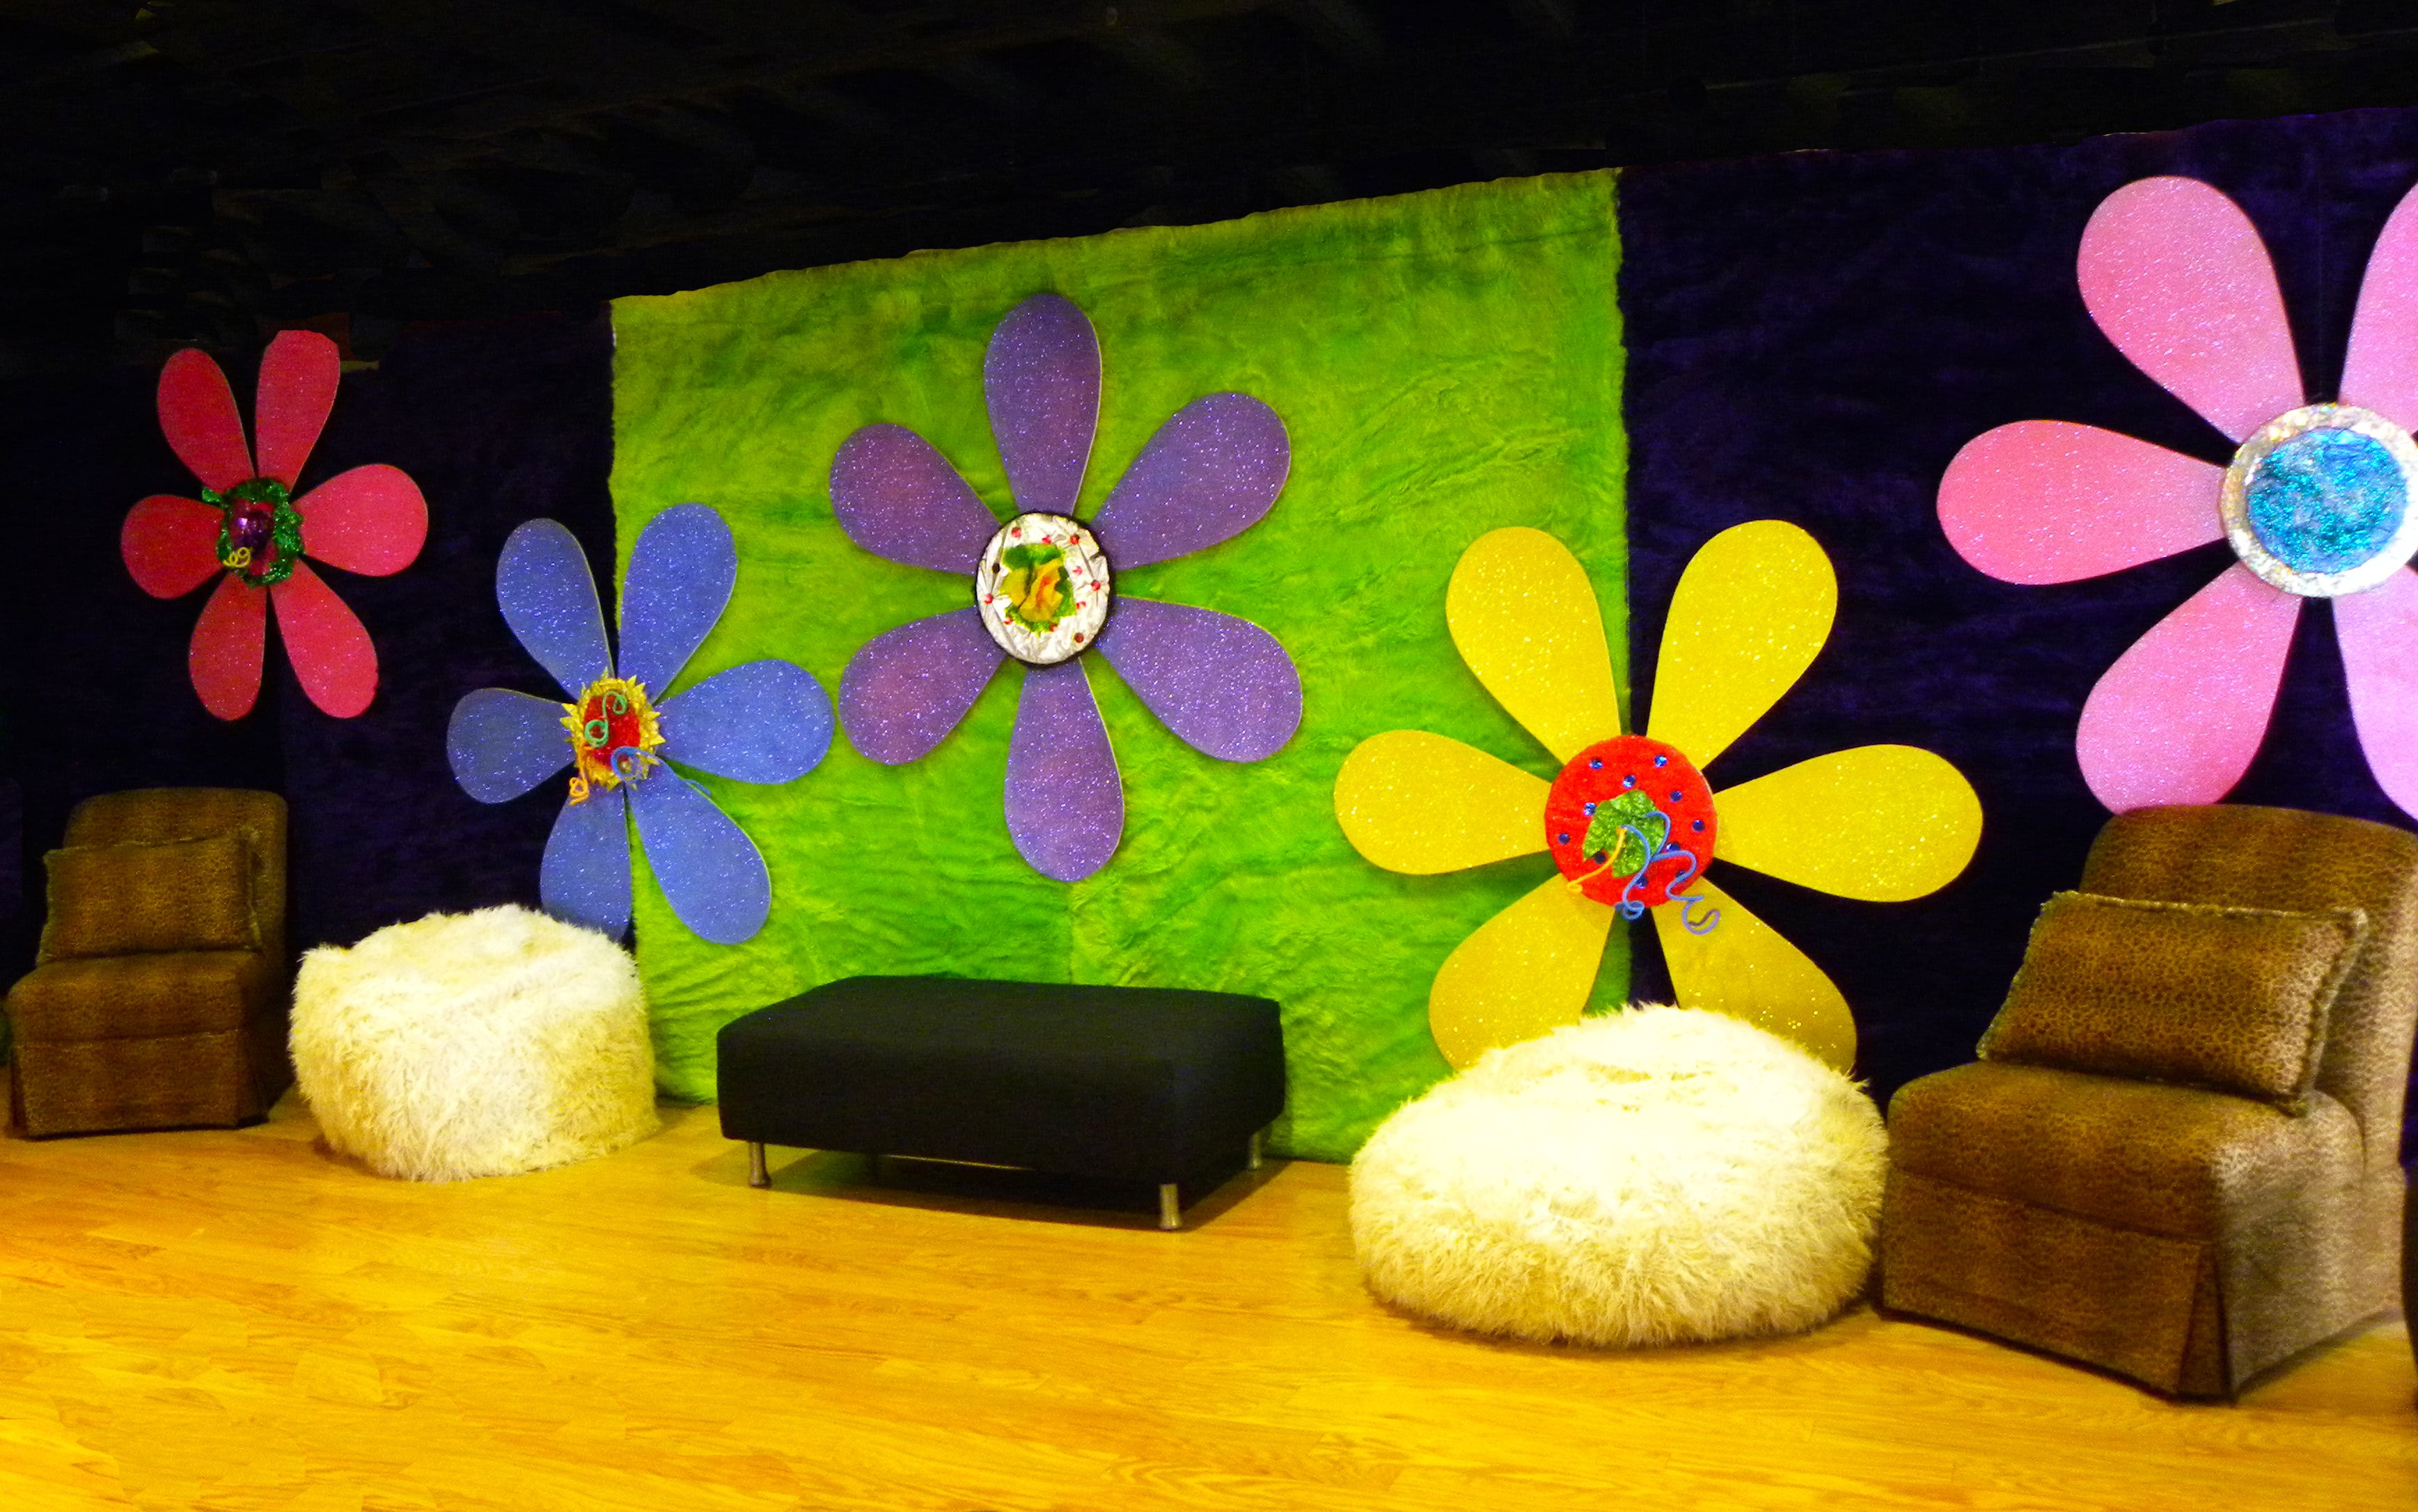 Groovy flower backdrop with retro seating 70 39 s party for Decoration 70s party